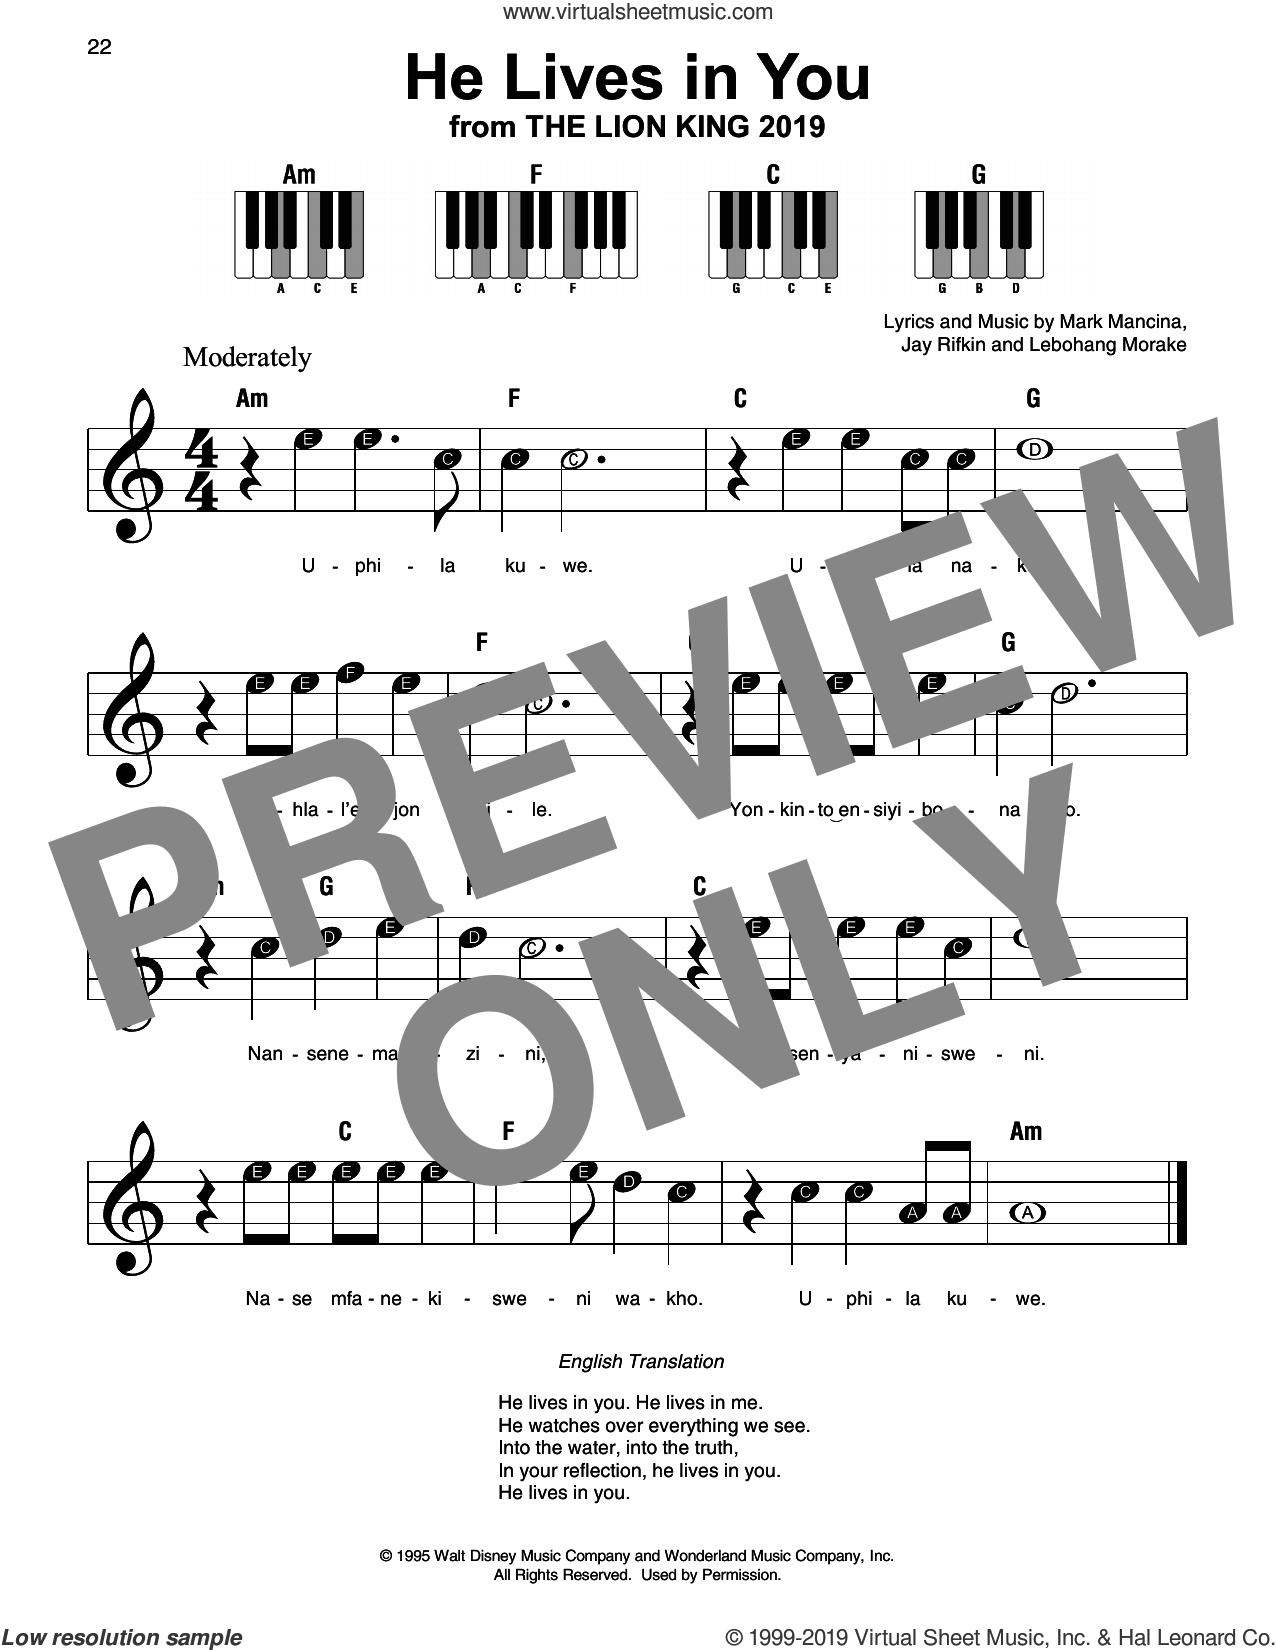 He Lives In You (from The Lion King 2019) sheet music for piano solo by Elton John, Lebo M., Jay Rifkin, Lebohang Morake, Mark Mancina and Tim Rice, beginner skill level